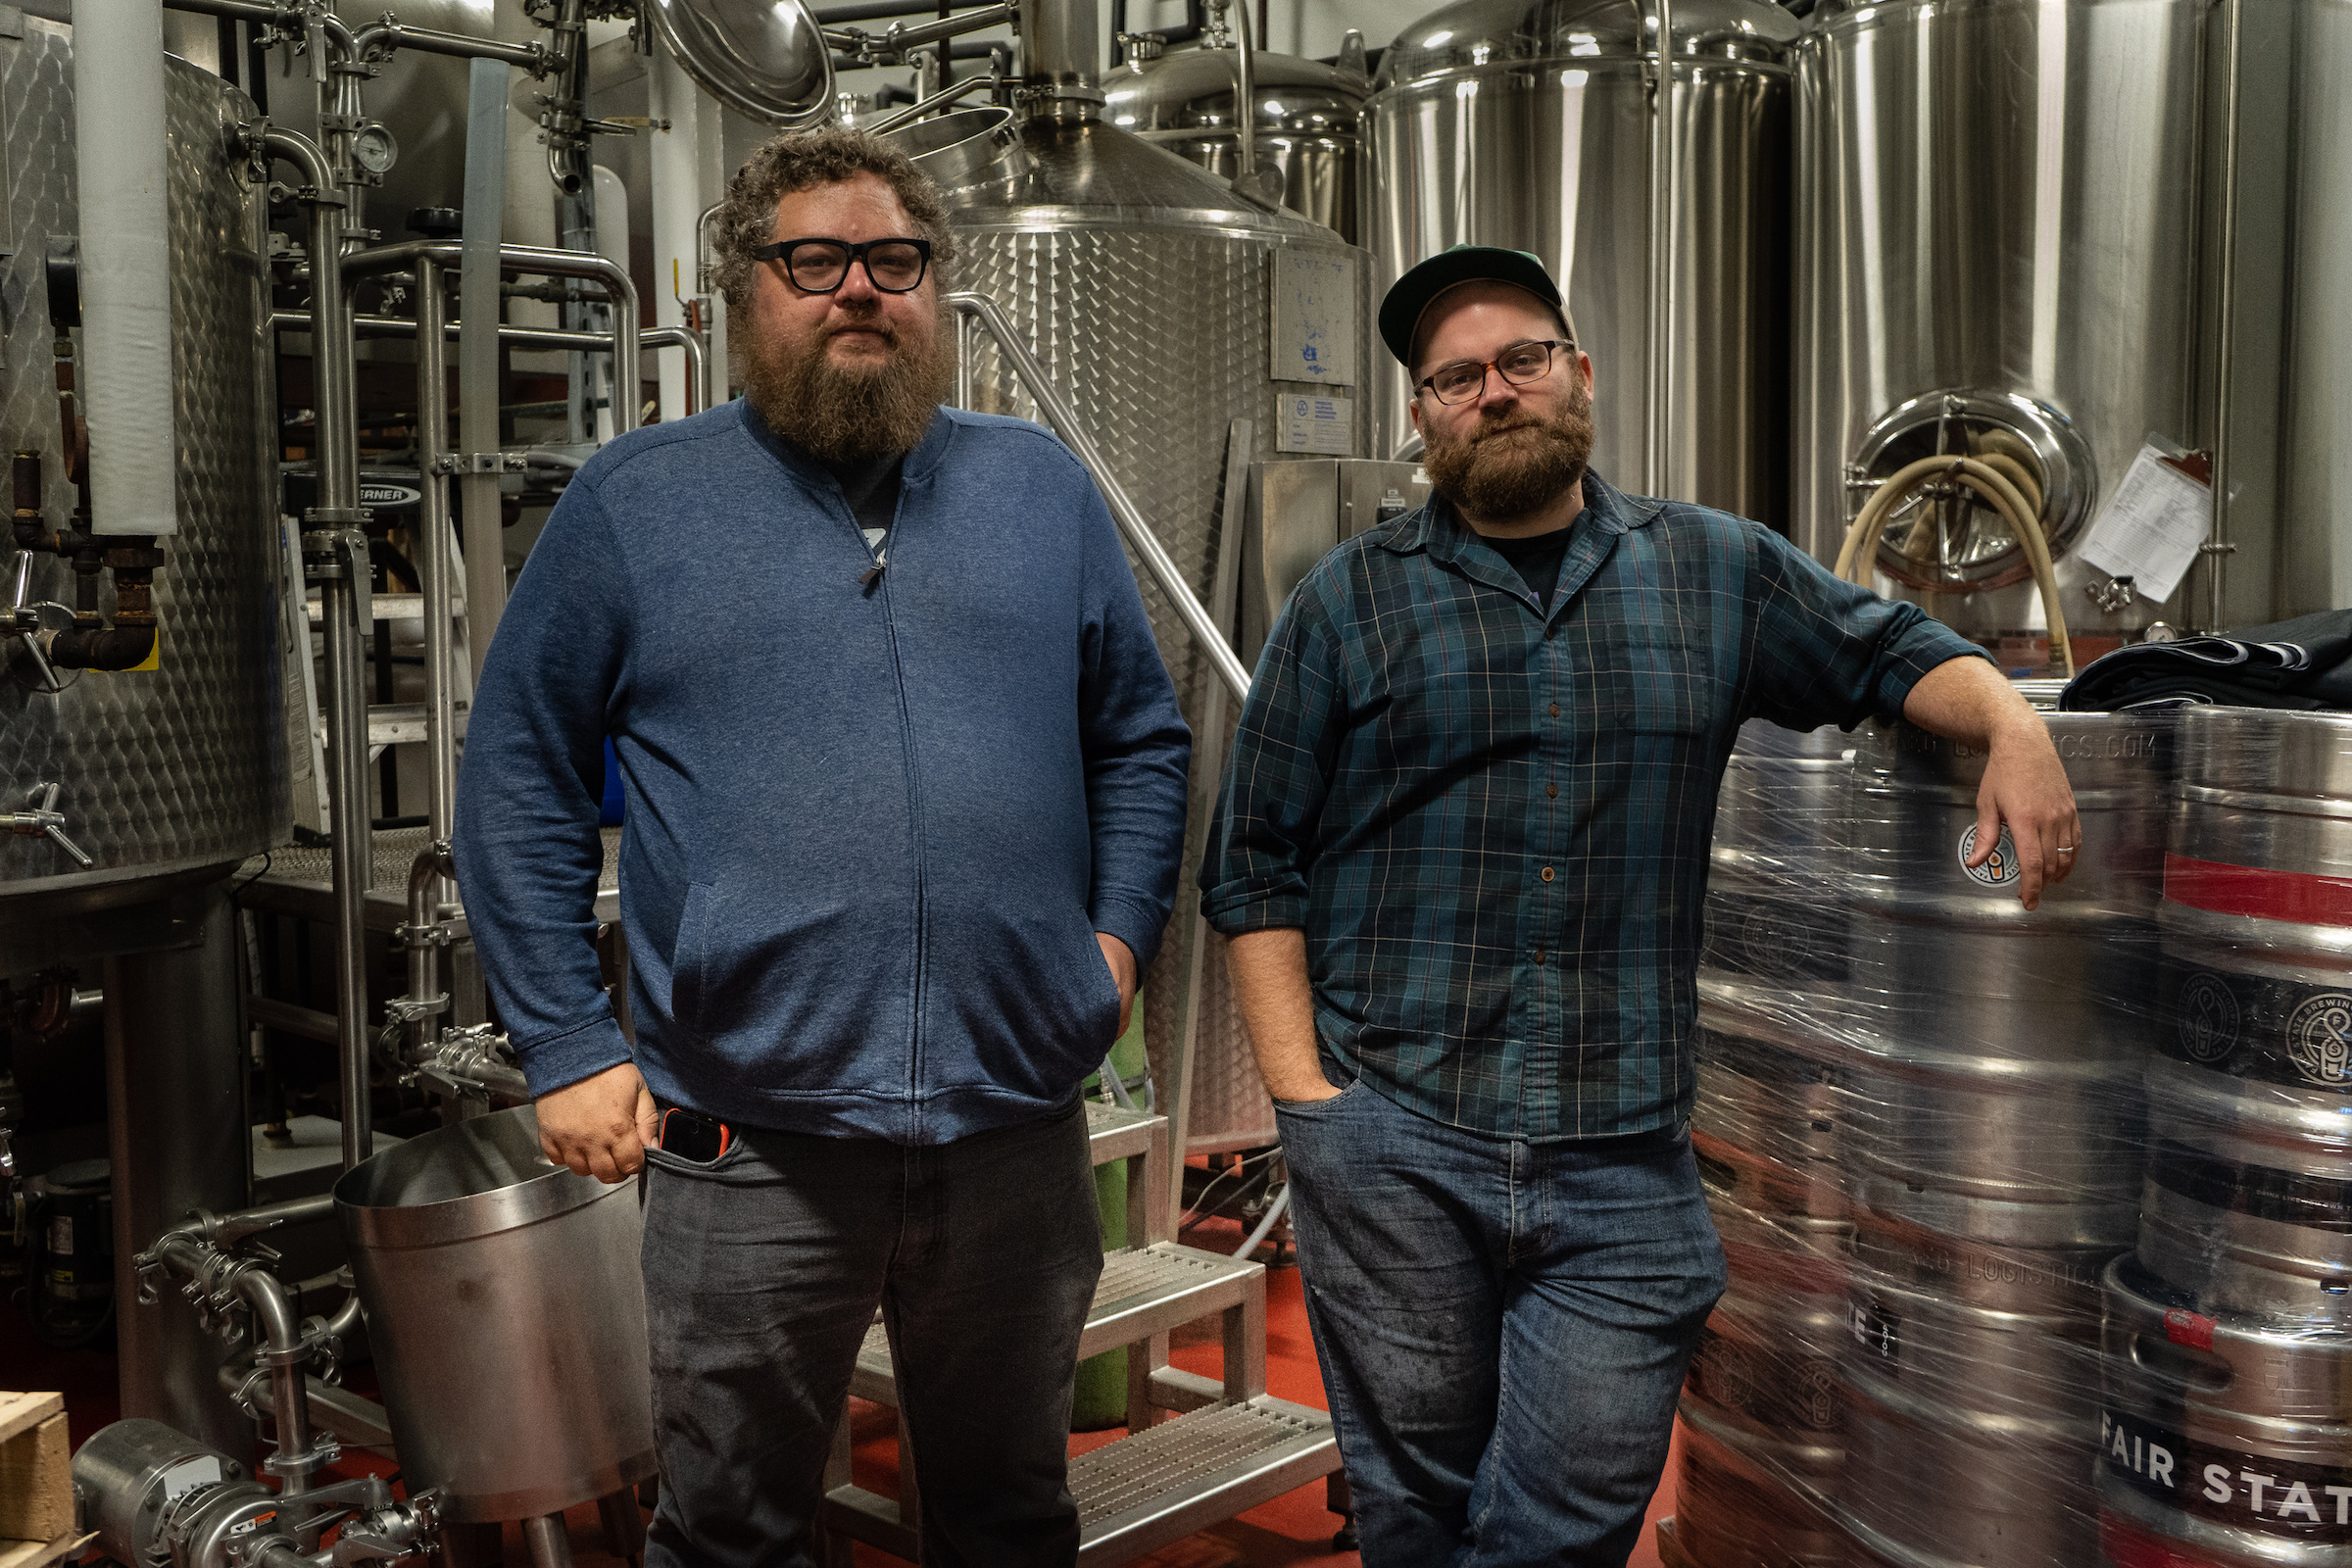 Fair State's new director of brewing operations Jerrod Johnson (left) joins Fair State head brewer Niko Tonks (right) // Photo via Fair State Brewing Cooperative's website